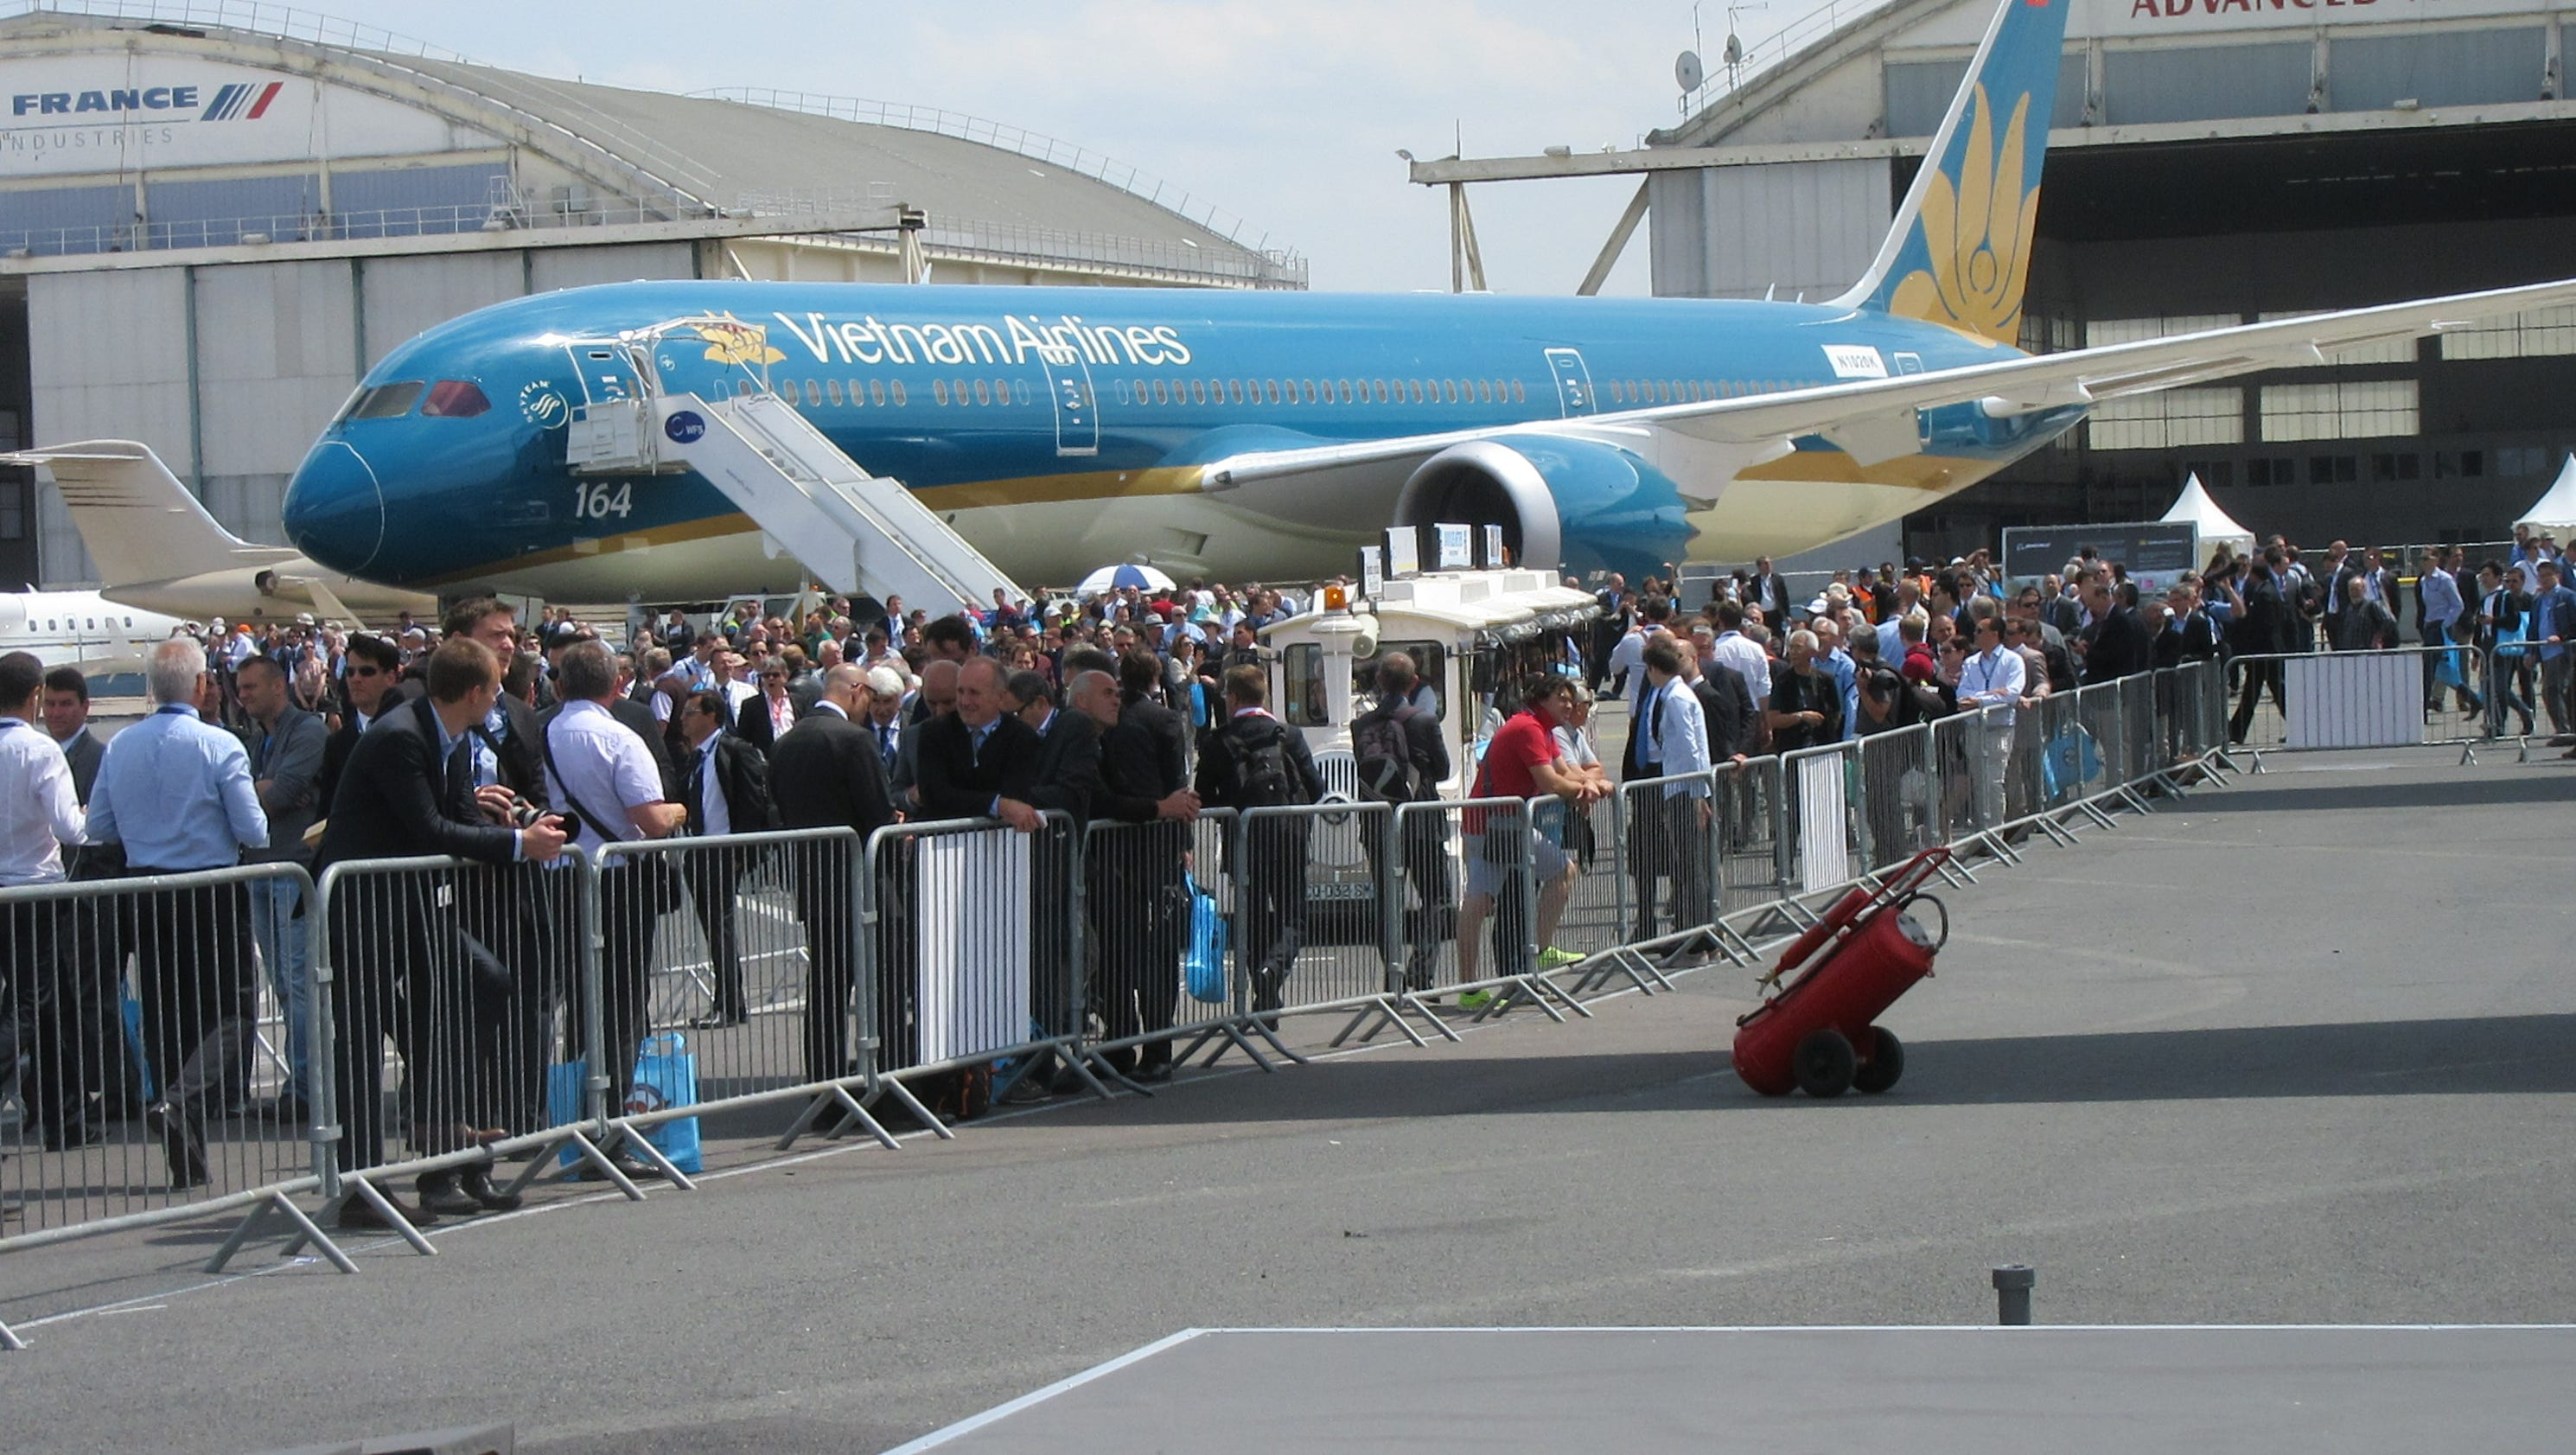 Scenes from the 2015 paris air show day 2 for Air show paris 2015